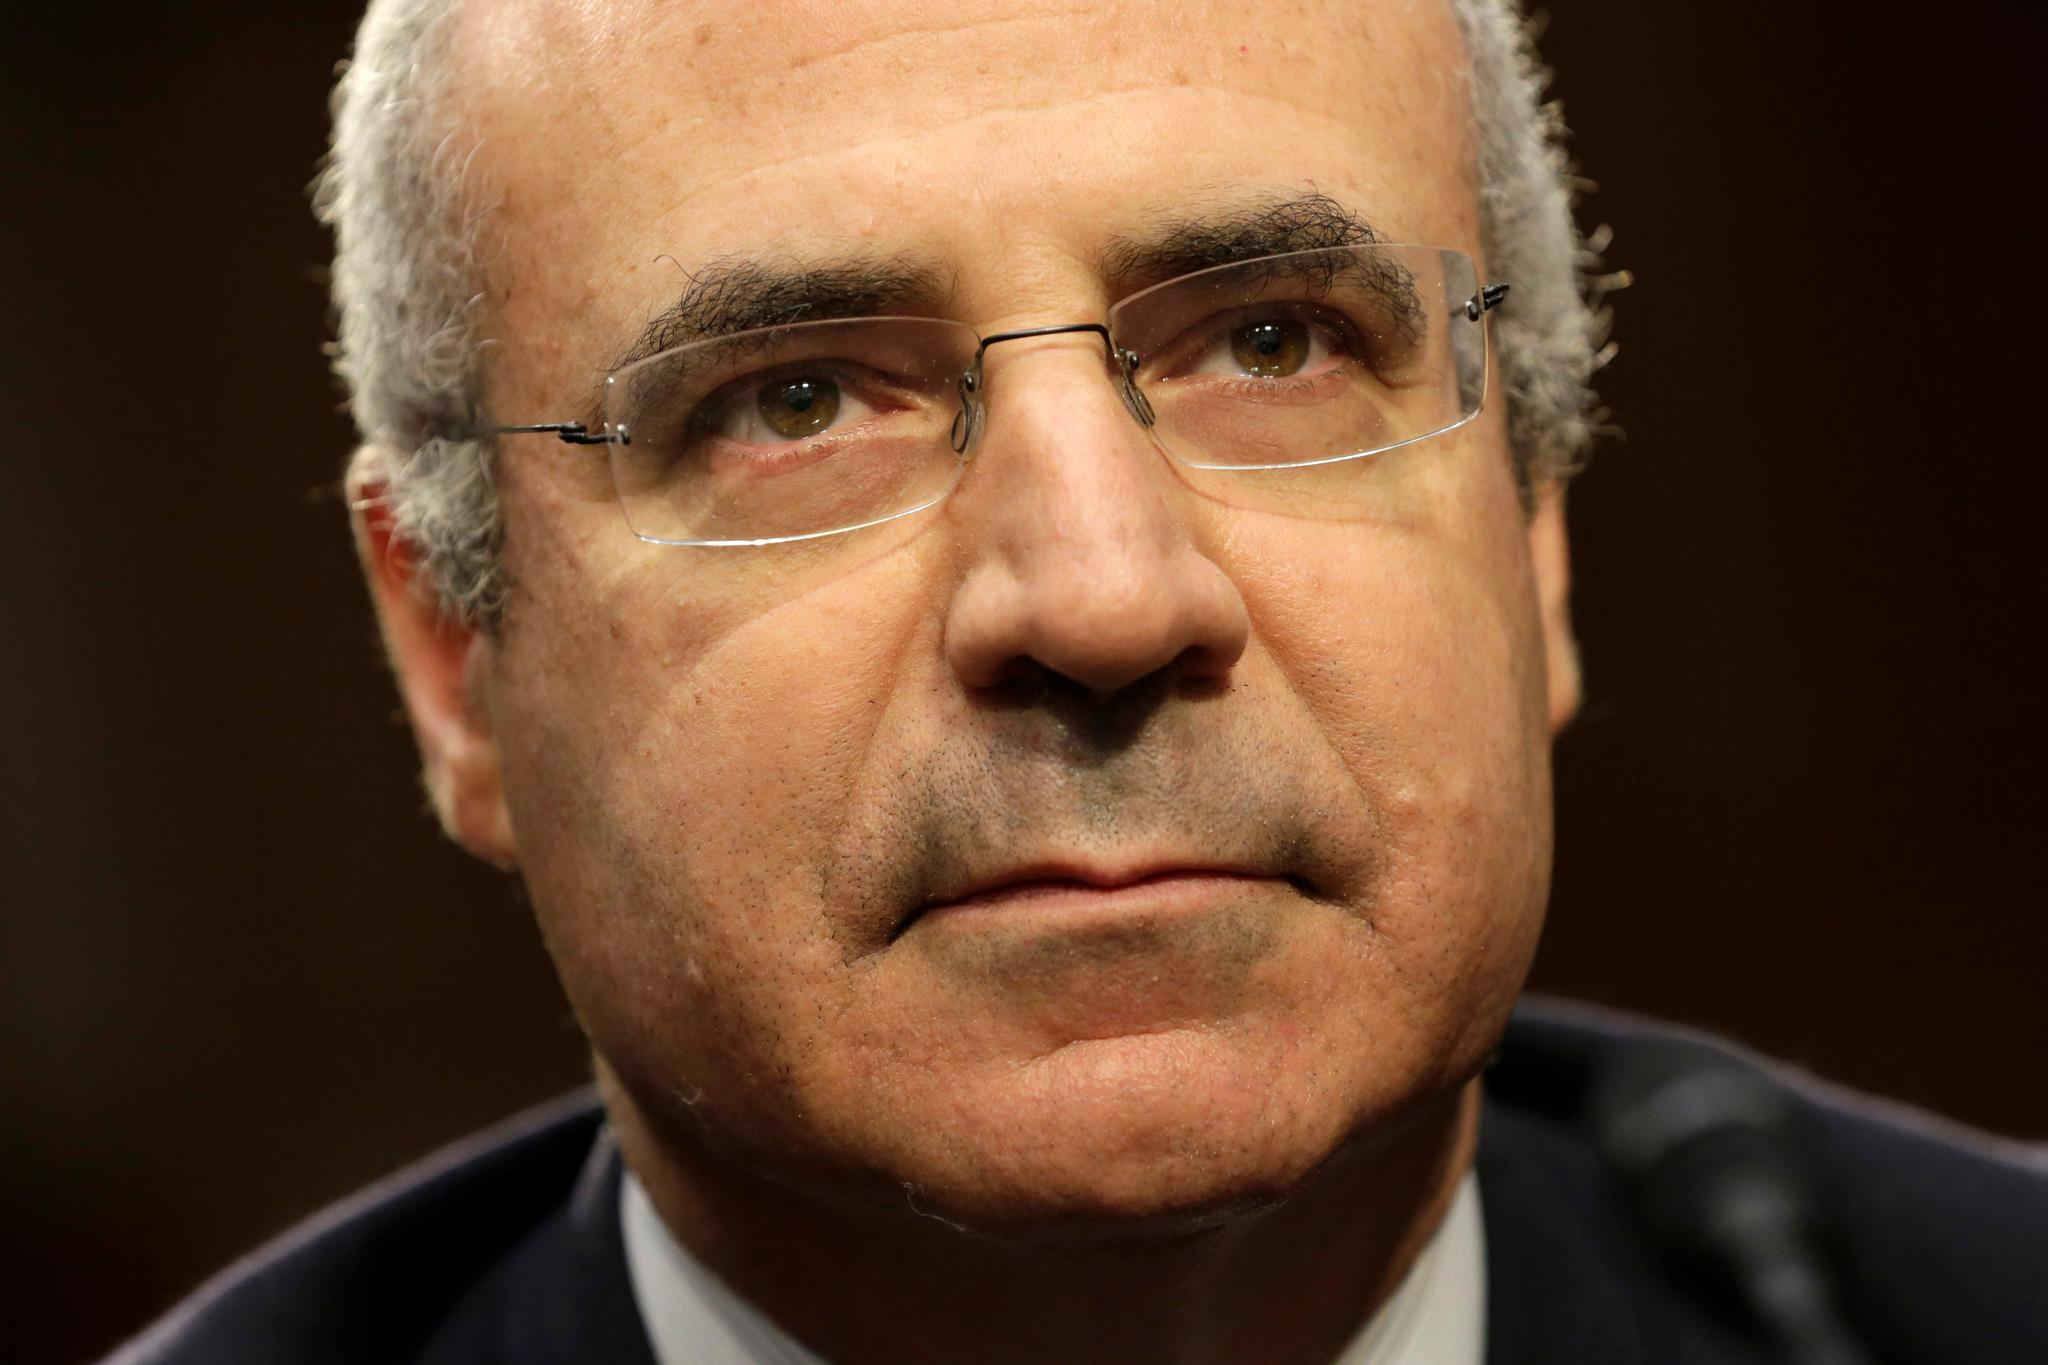 Hermitage Capital CEO William Browder testifies before the Senate Judiciary Committee on July 27 about Russian meddling in the 2016 presidential election. He spoke about the June 2016 meeting that Donald Trump Jr. had with a Russian lawyer and other participants.